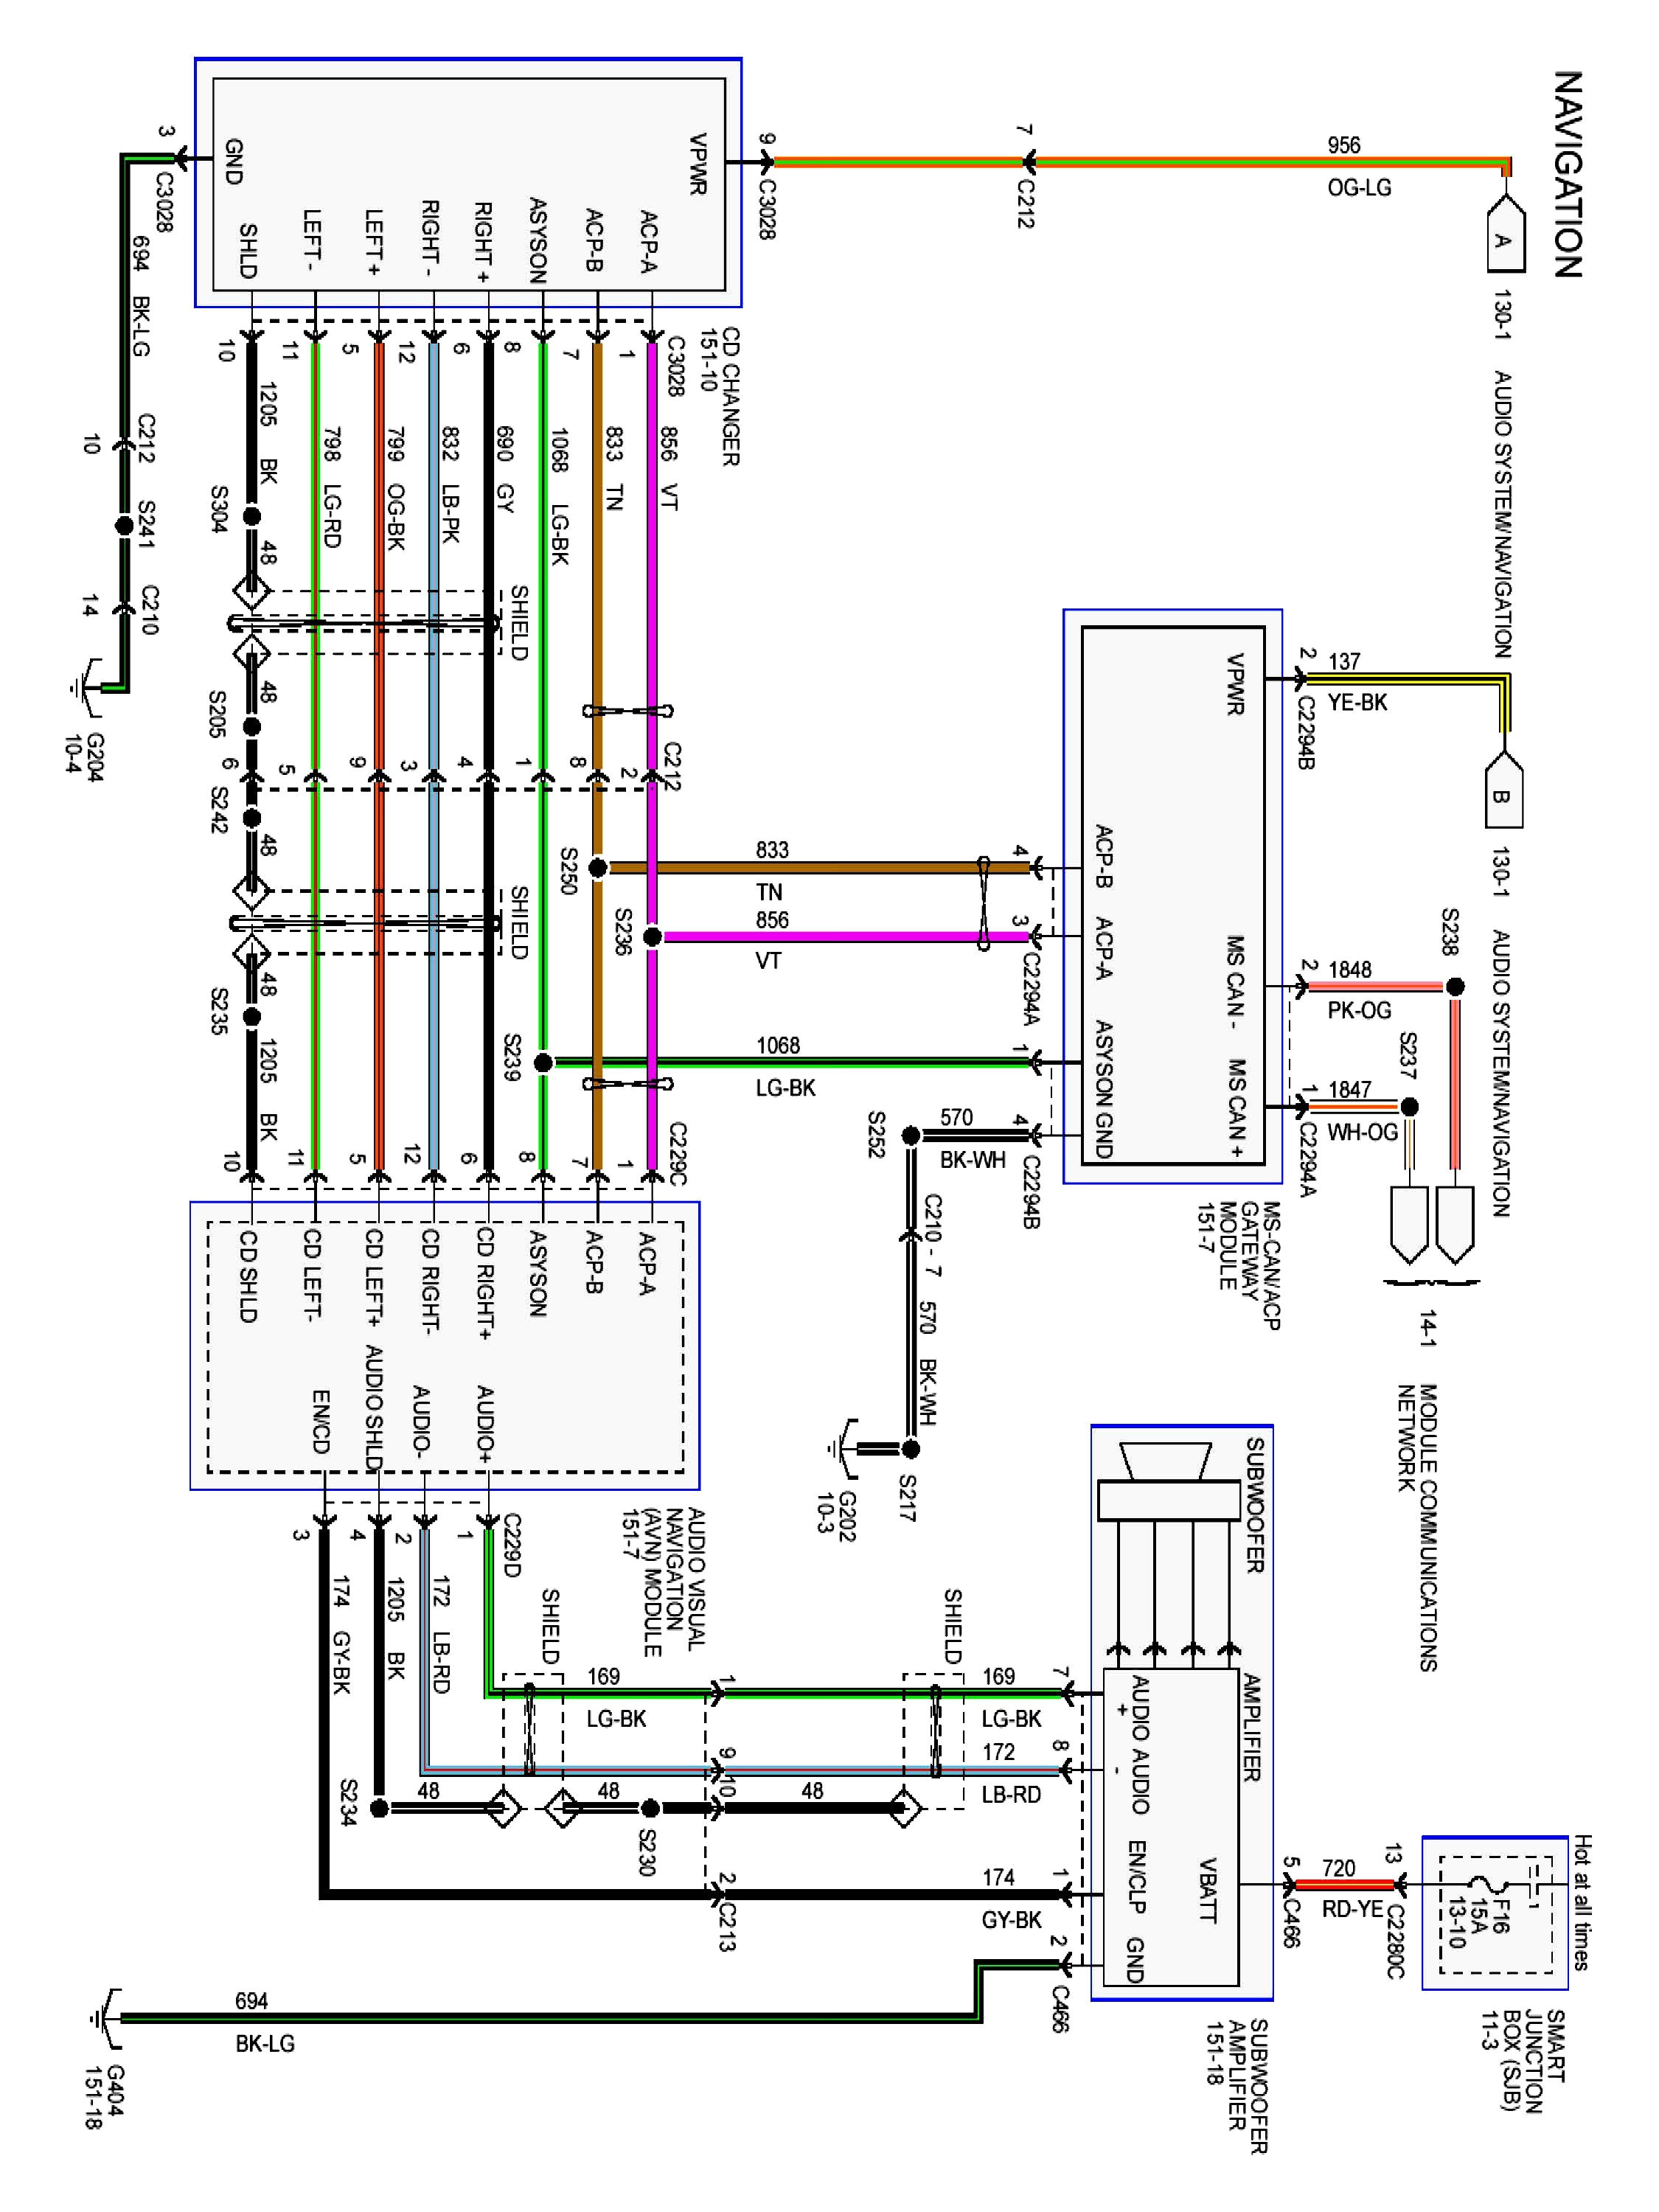 2004 ford f250 radio wiring diagram collection wiring diagram sample 2004 ford f250 radio wiring diagram collection 2004 f250 wiring diagram wiring diagram u2022 rh